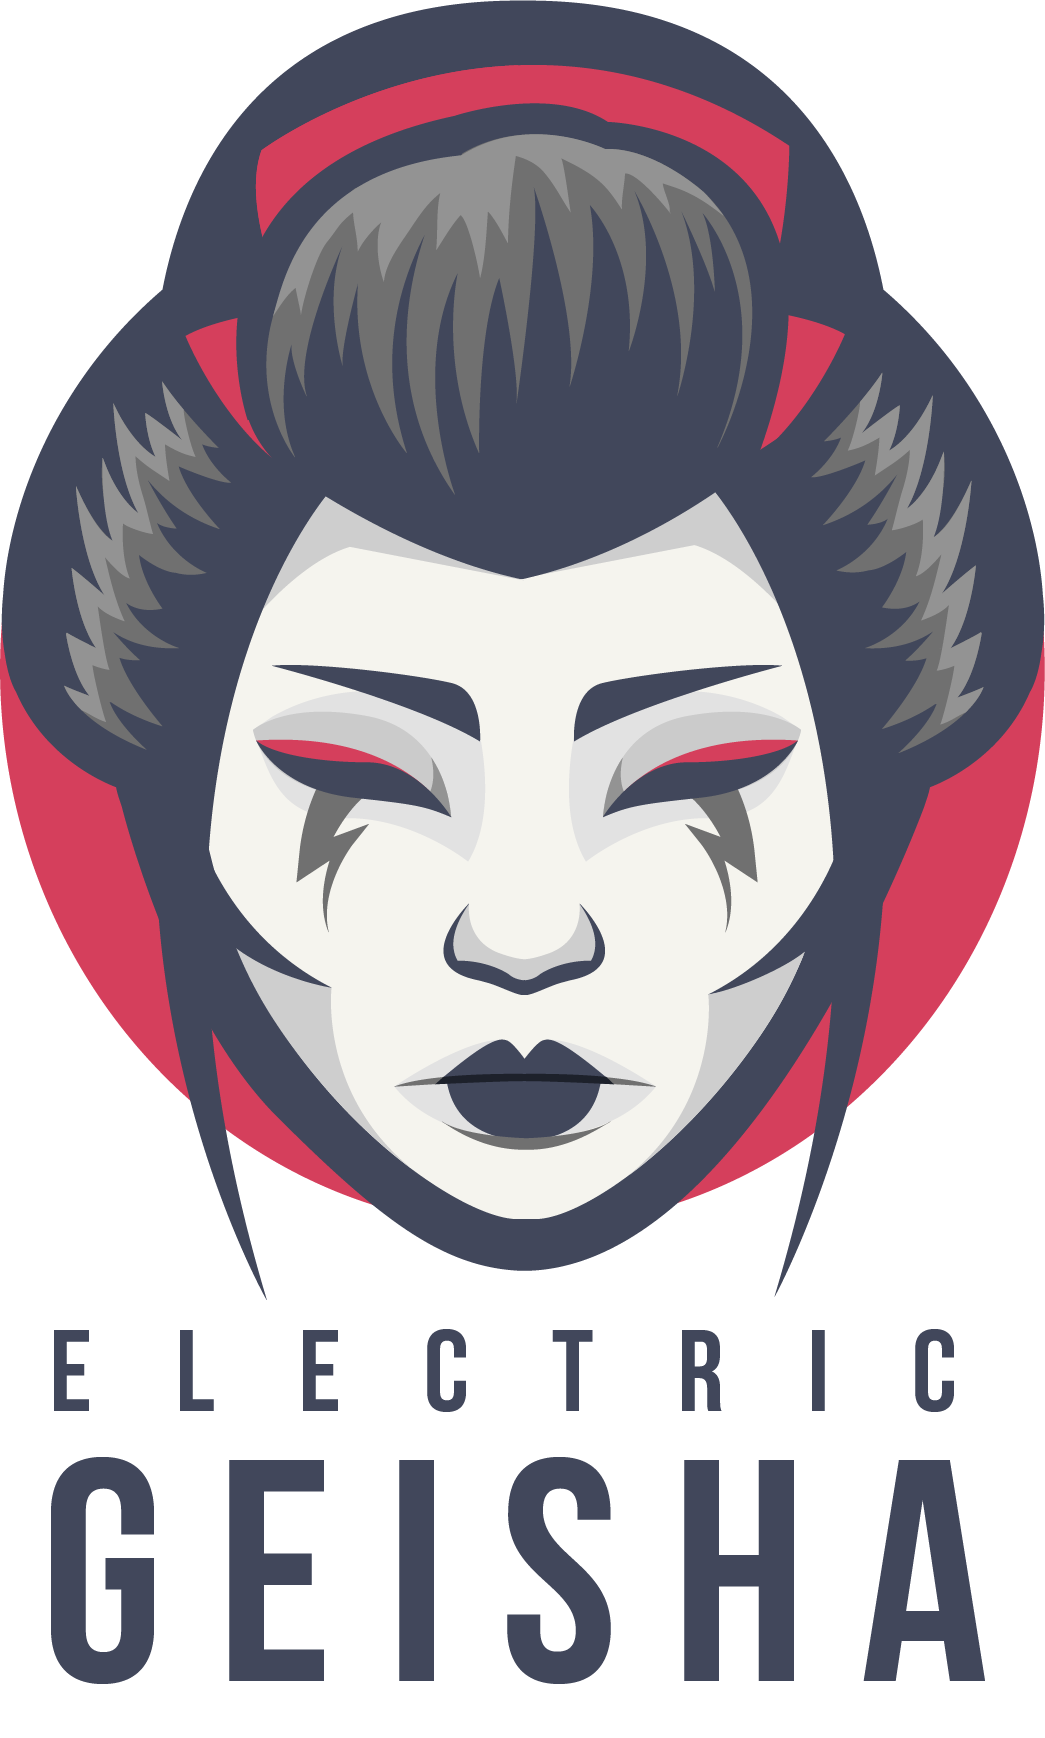 Electric Geisha | Digital Assets | Design Studio | Games | Film | VR | 3D Printing